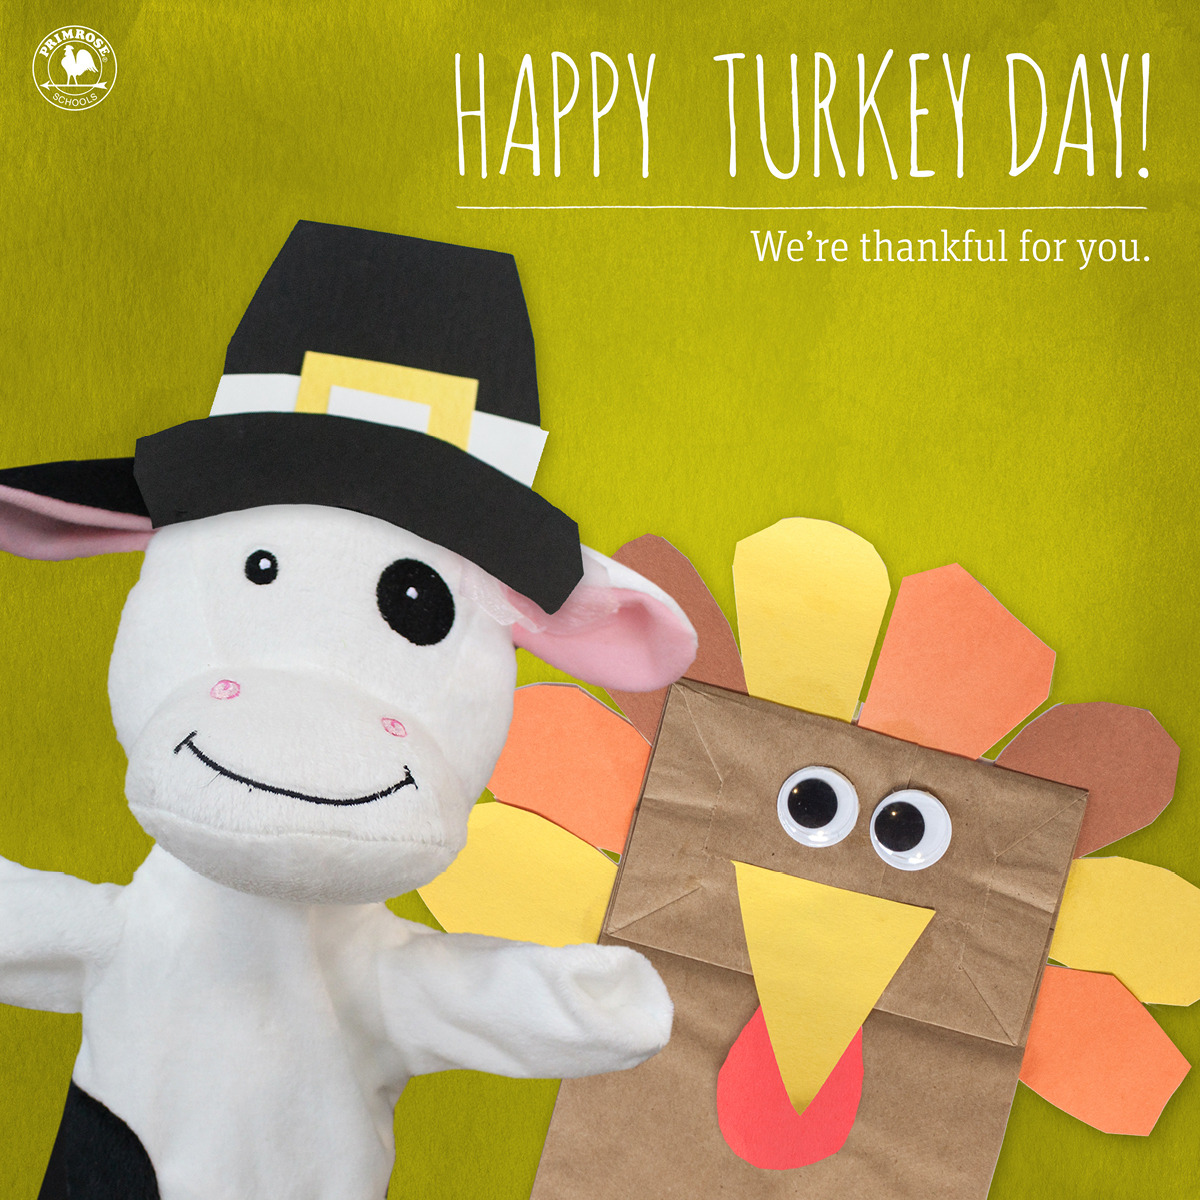 """A cow puppet wears a pilgrim hat next to a paper bag turkey, with the text """"Happy Turkey Day!"""""""